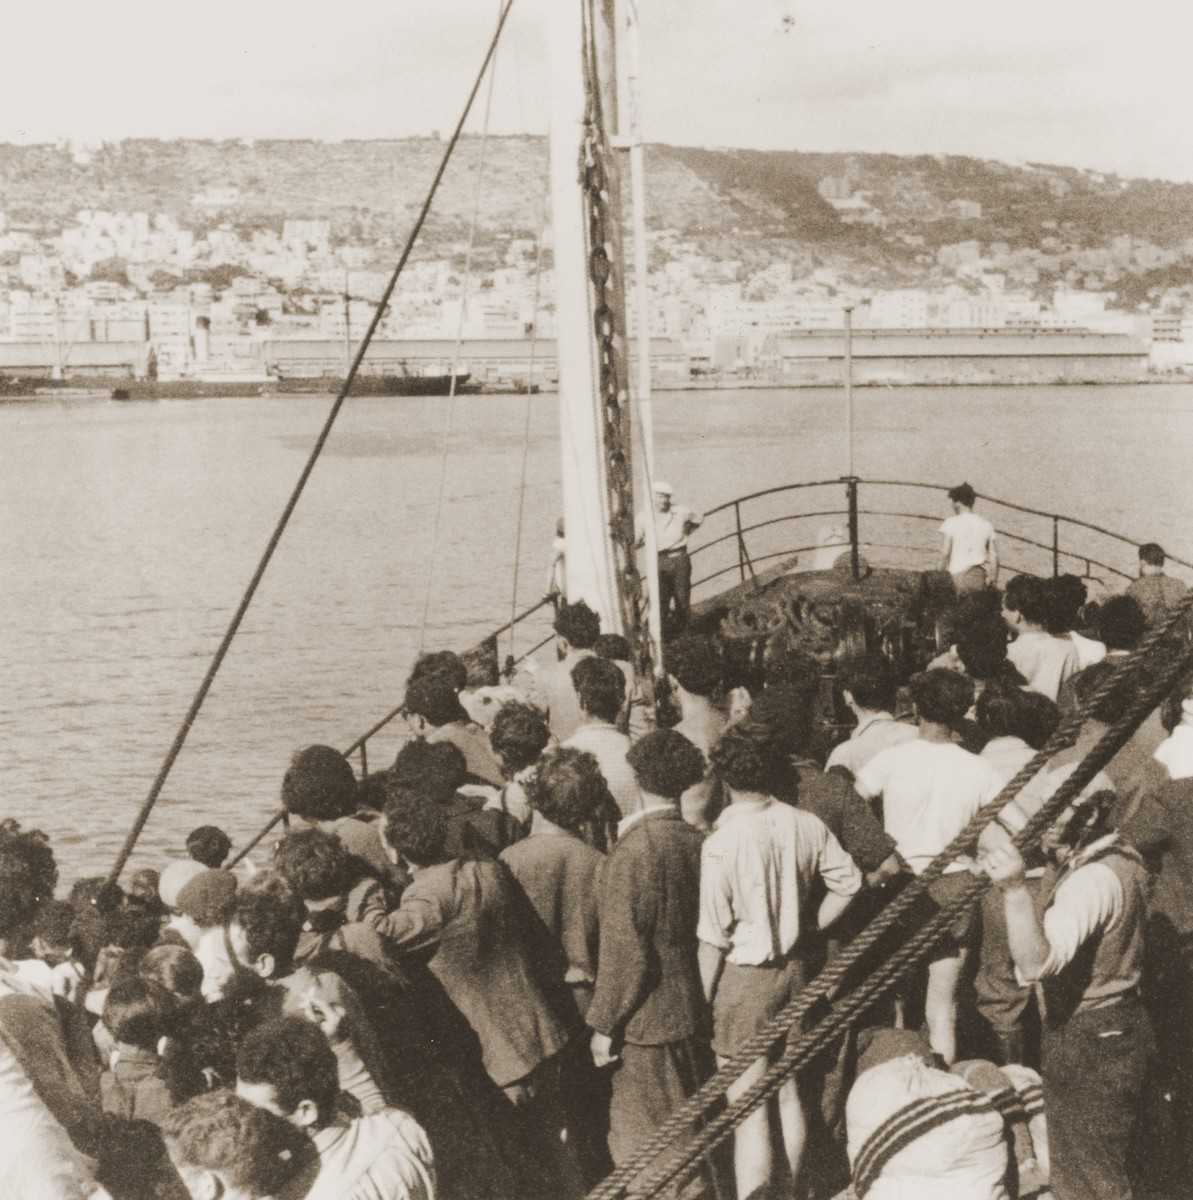 Passengers view Mount Carmel from the deck of the Mala immigrant ship as it enters the port of Haifa.  Acording to the donor, no attention was paid to the Egyptian aircraft's failed attempt to bomb the Mala.